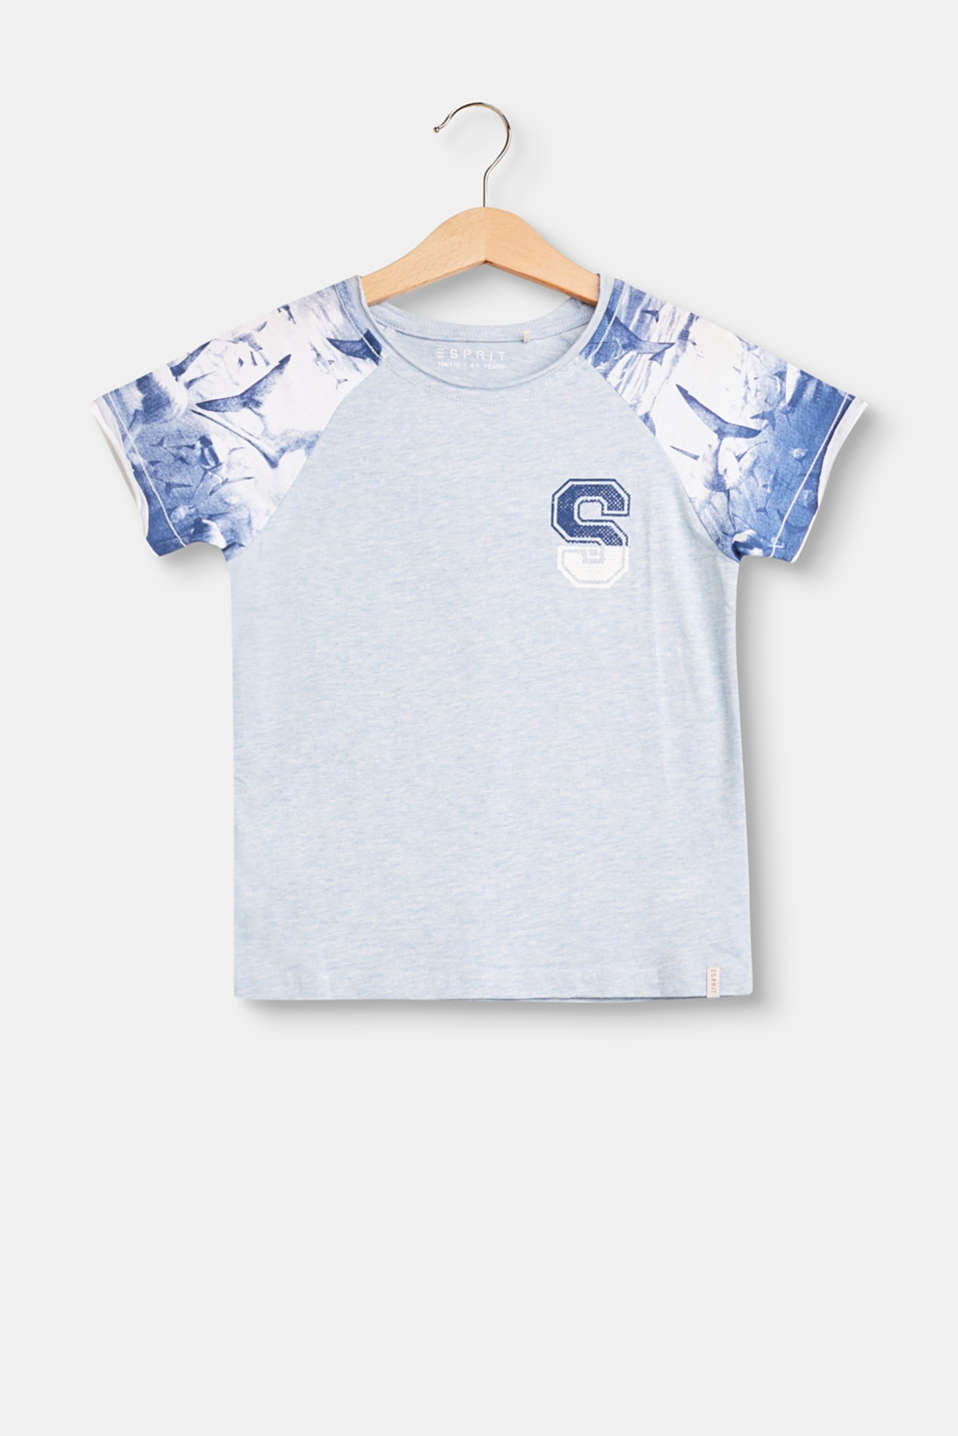 Esprit - Jersey top with a photo print, made of blended cotton